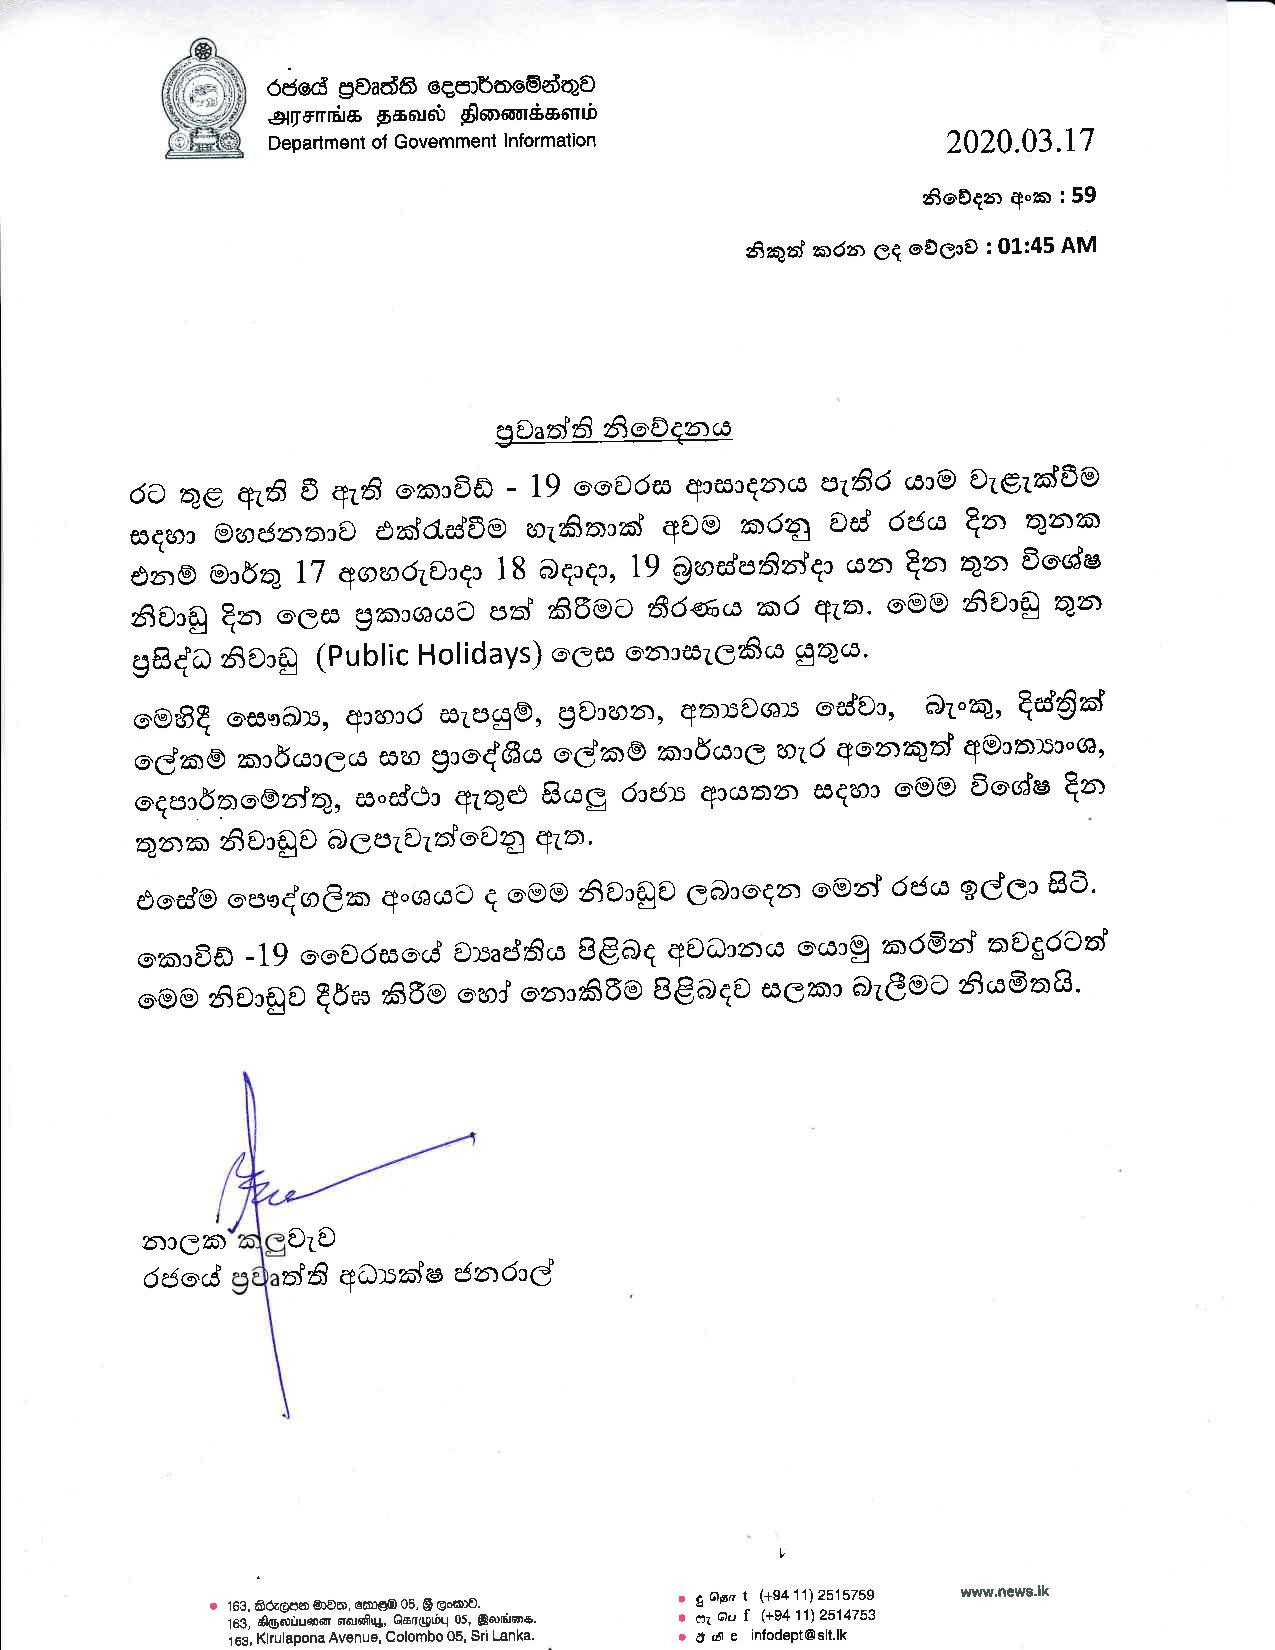 Media Release on 17.03.2020 page 001